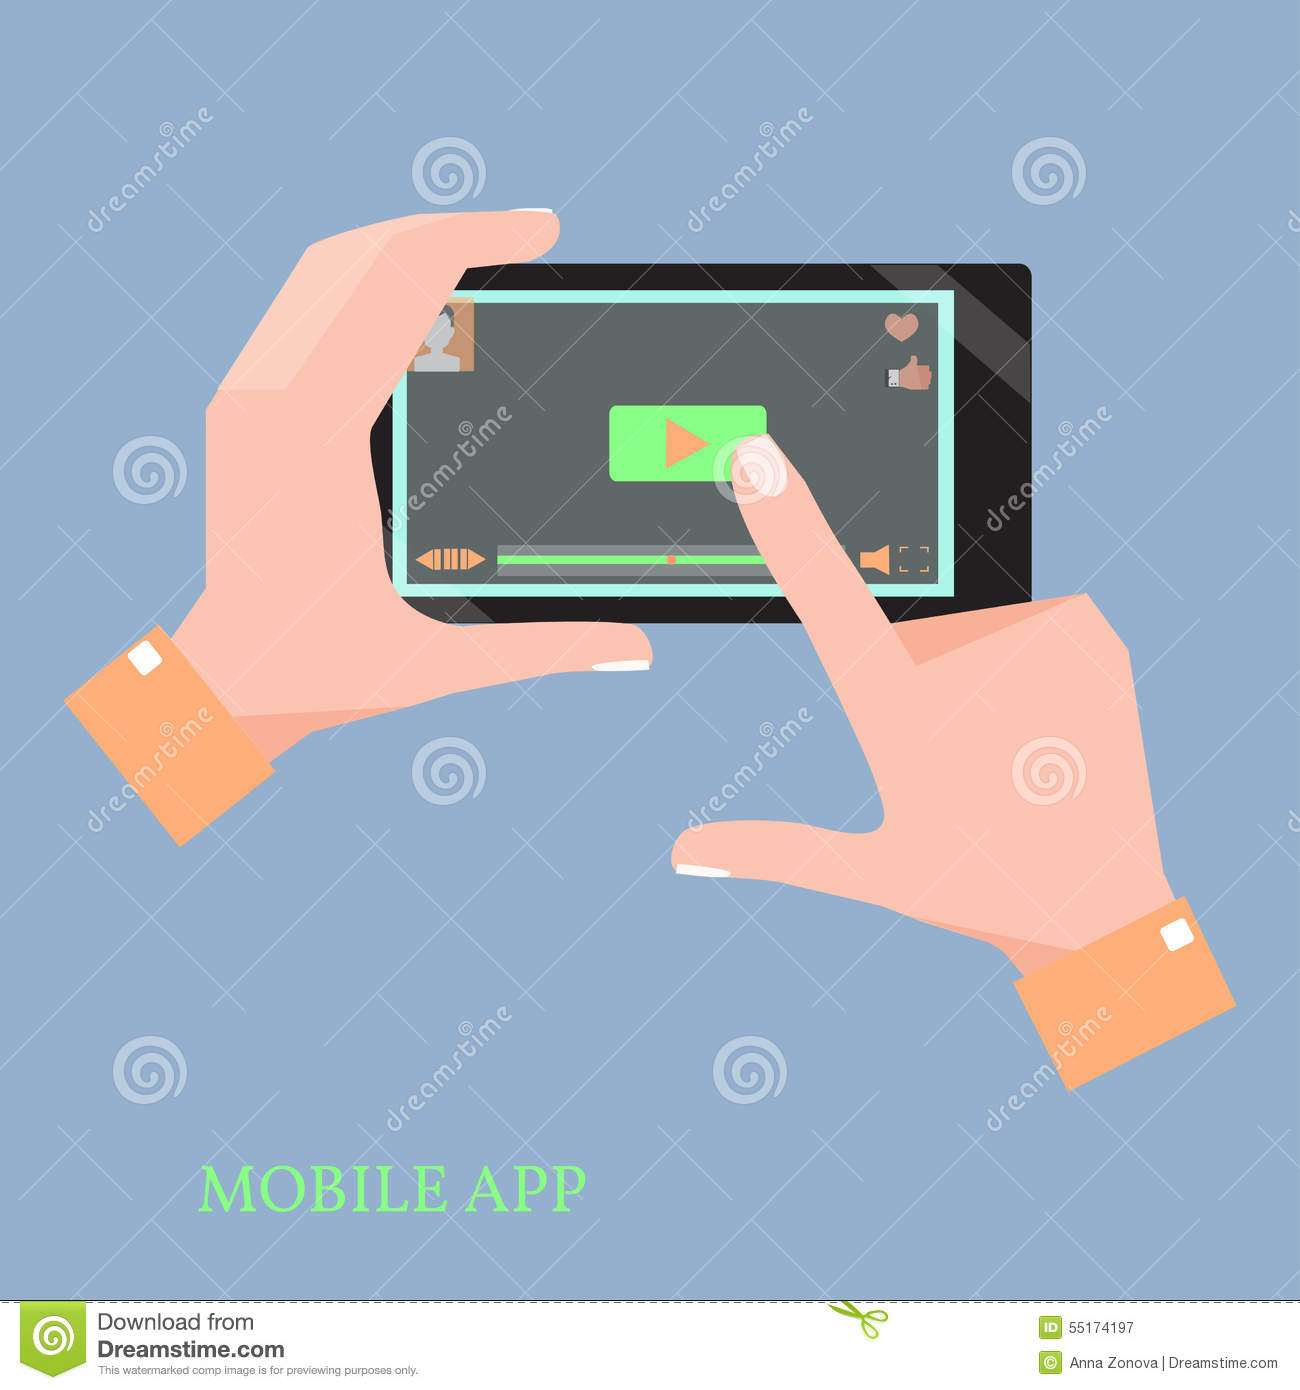 Mobile Phone With Video Player App In The Human Hands  Stock Vector